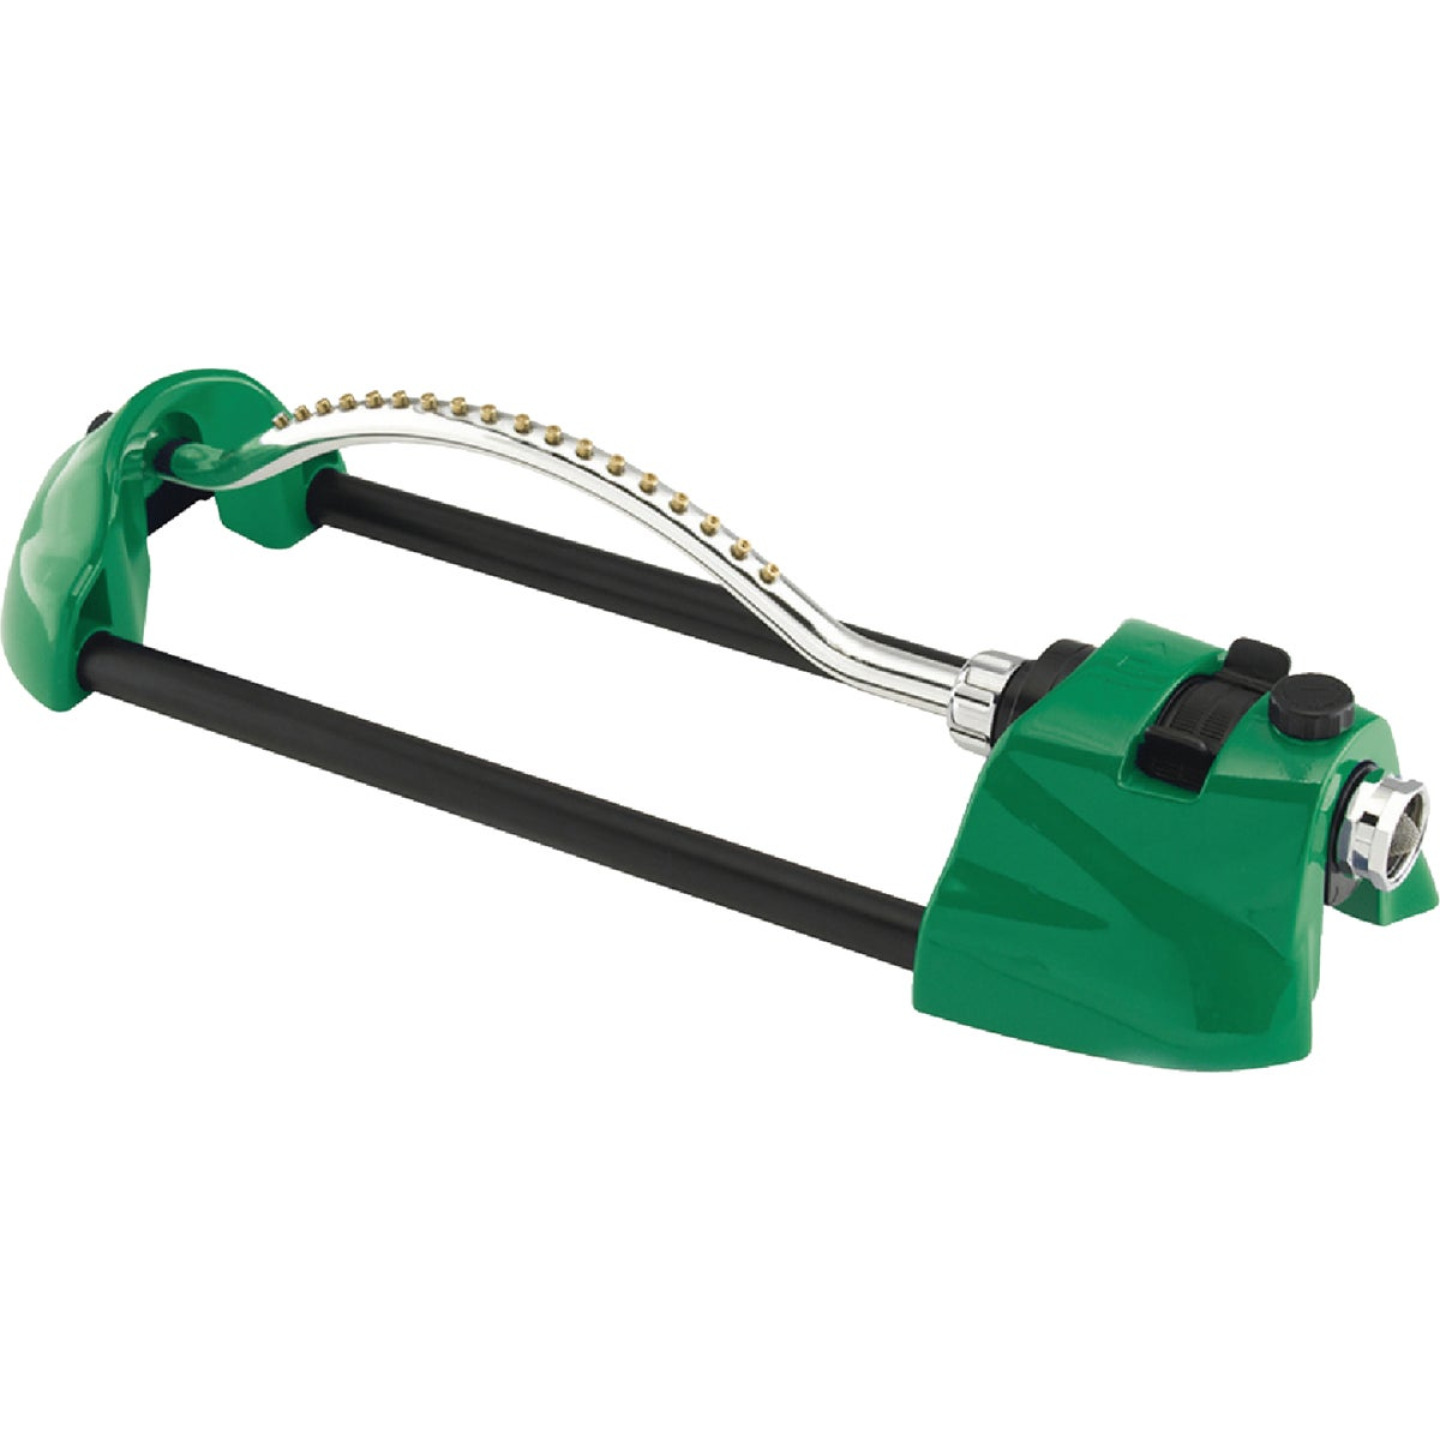 Dramm ColorStorm Heavy-Duty Metal 3000 Sq. Ft. Green Oscillating Sprinkler Image 1